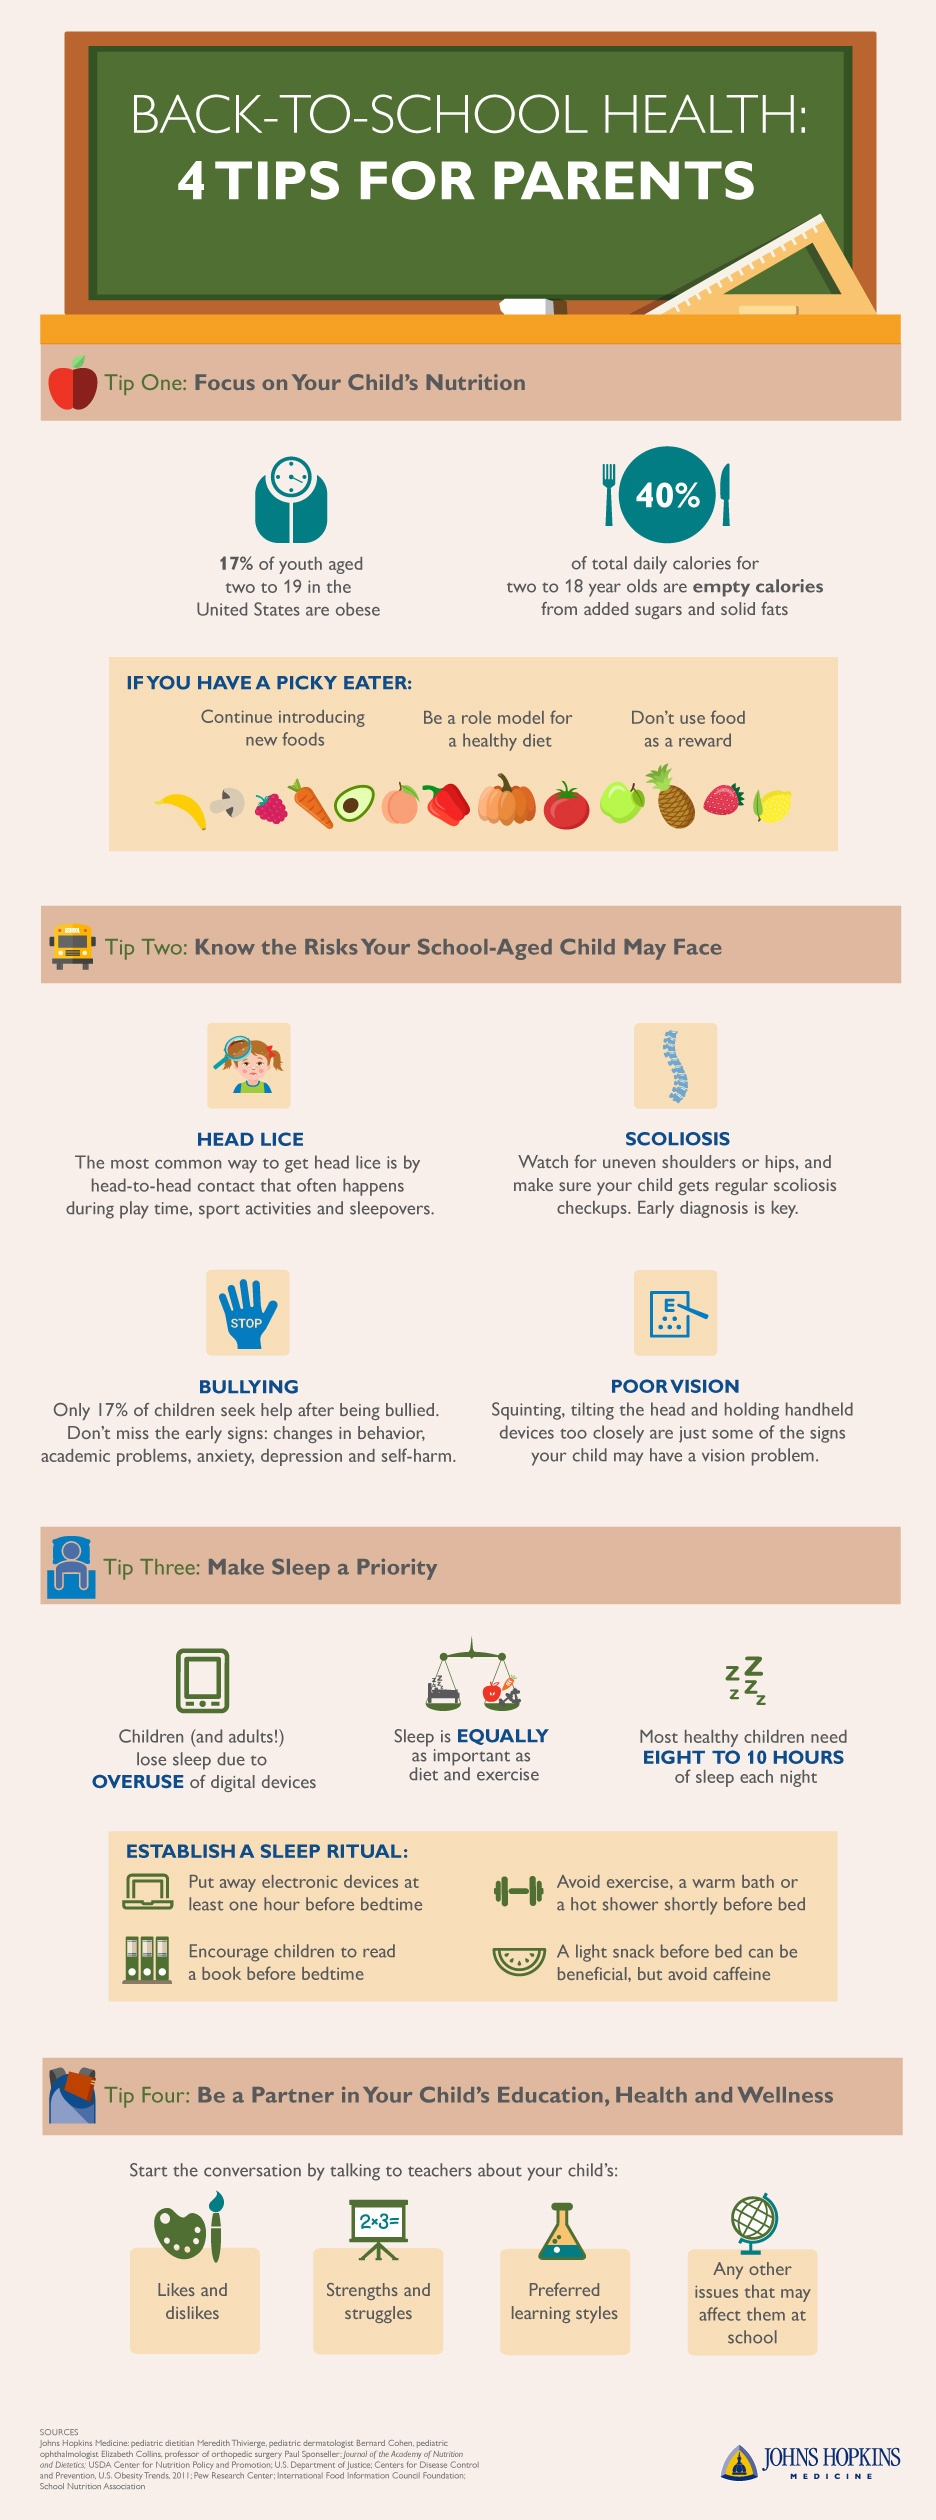 Back-to-School-Health-Tips-for-Parents-Infographic